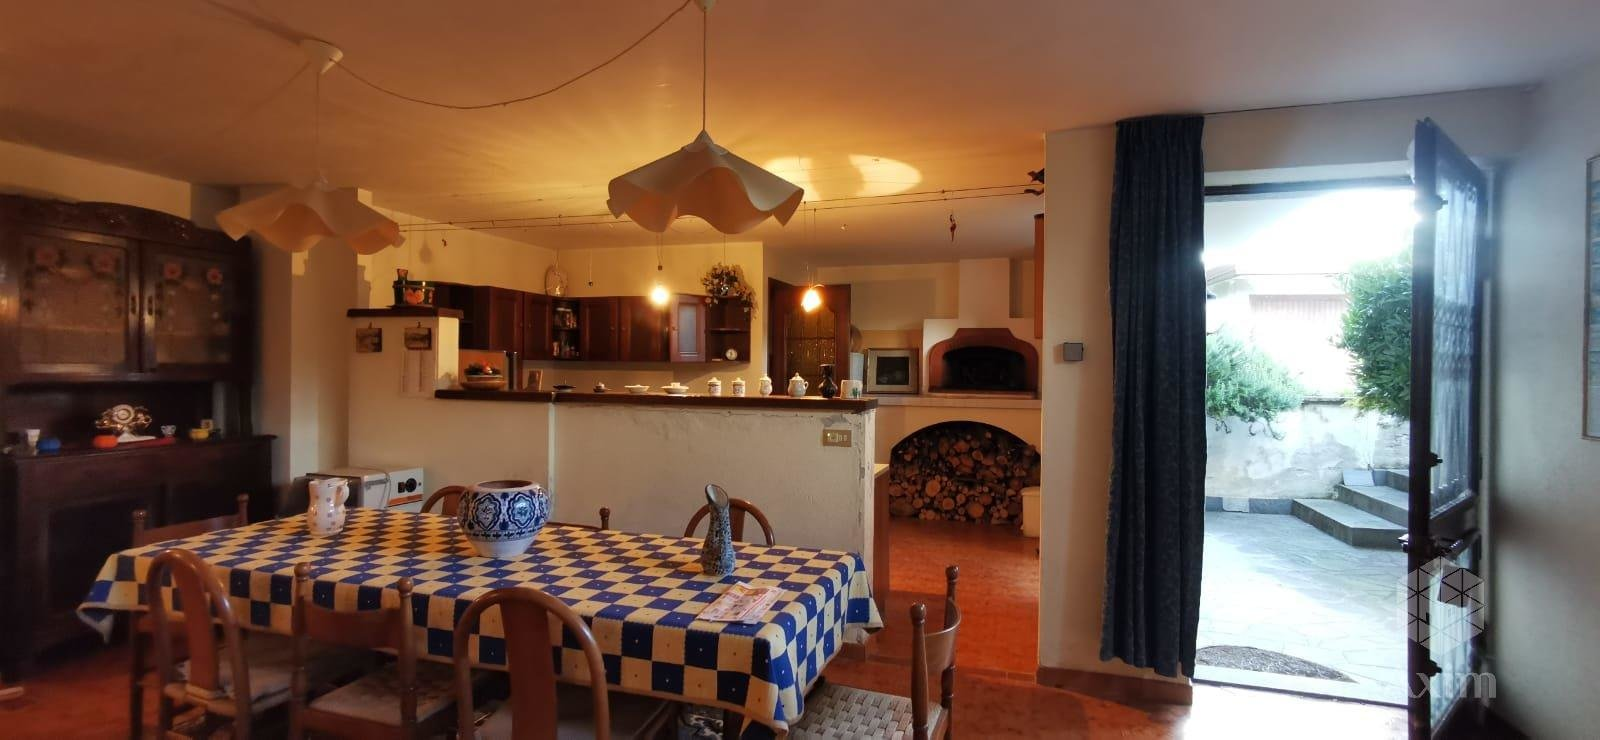 Villa a few km from the village center of Caraglio